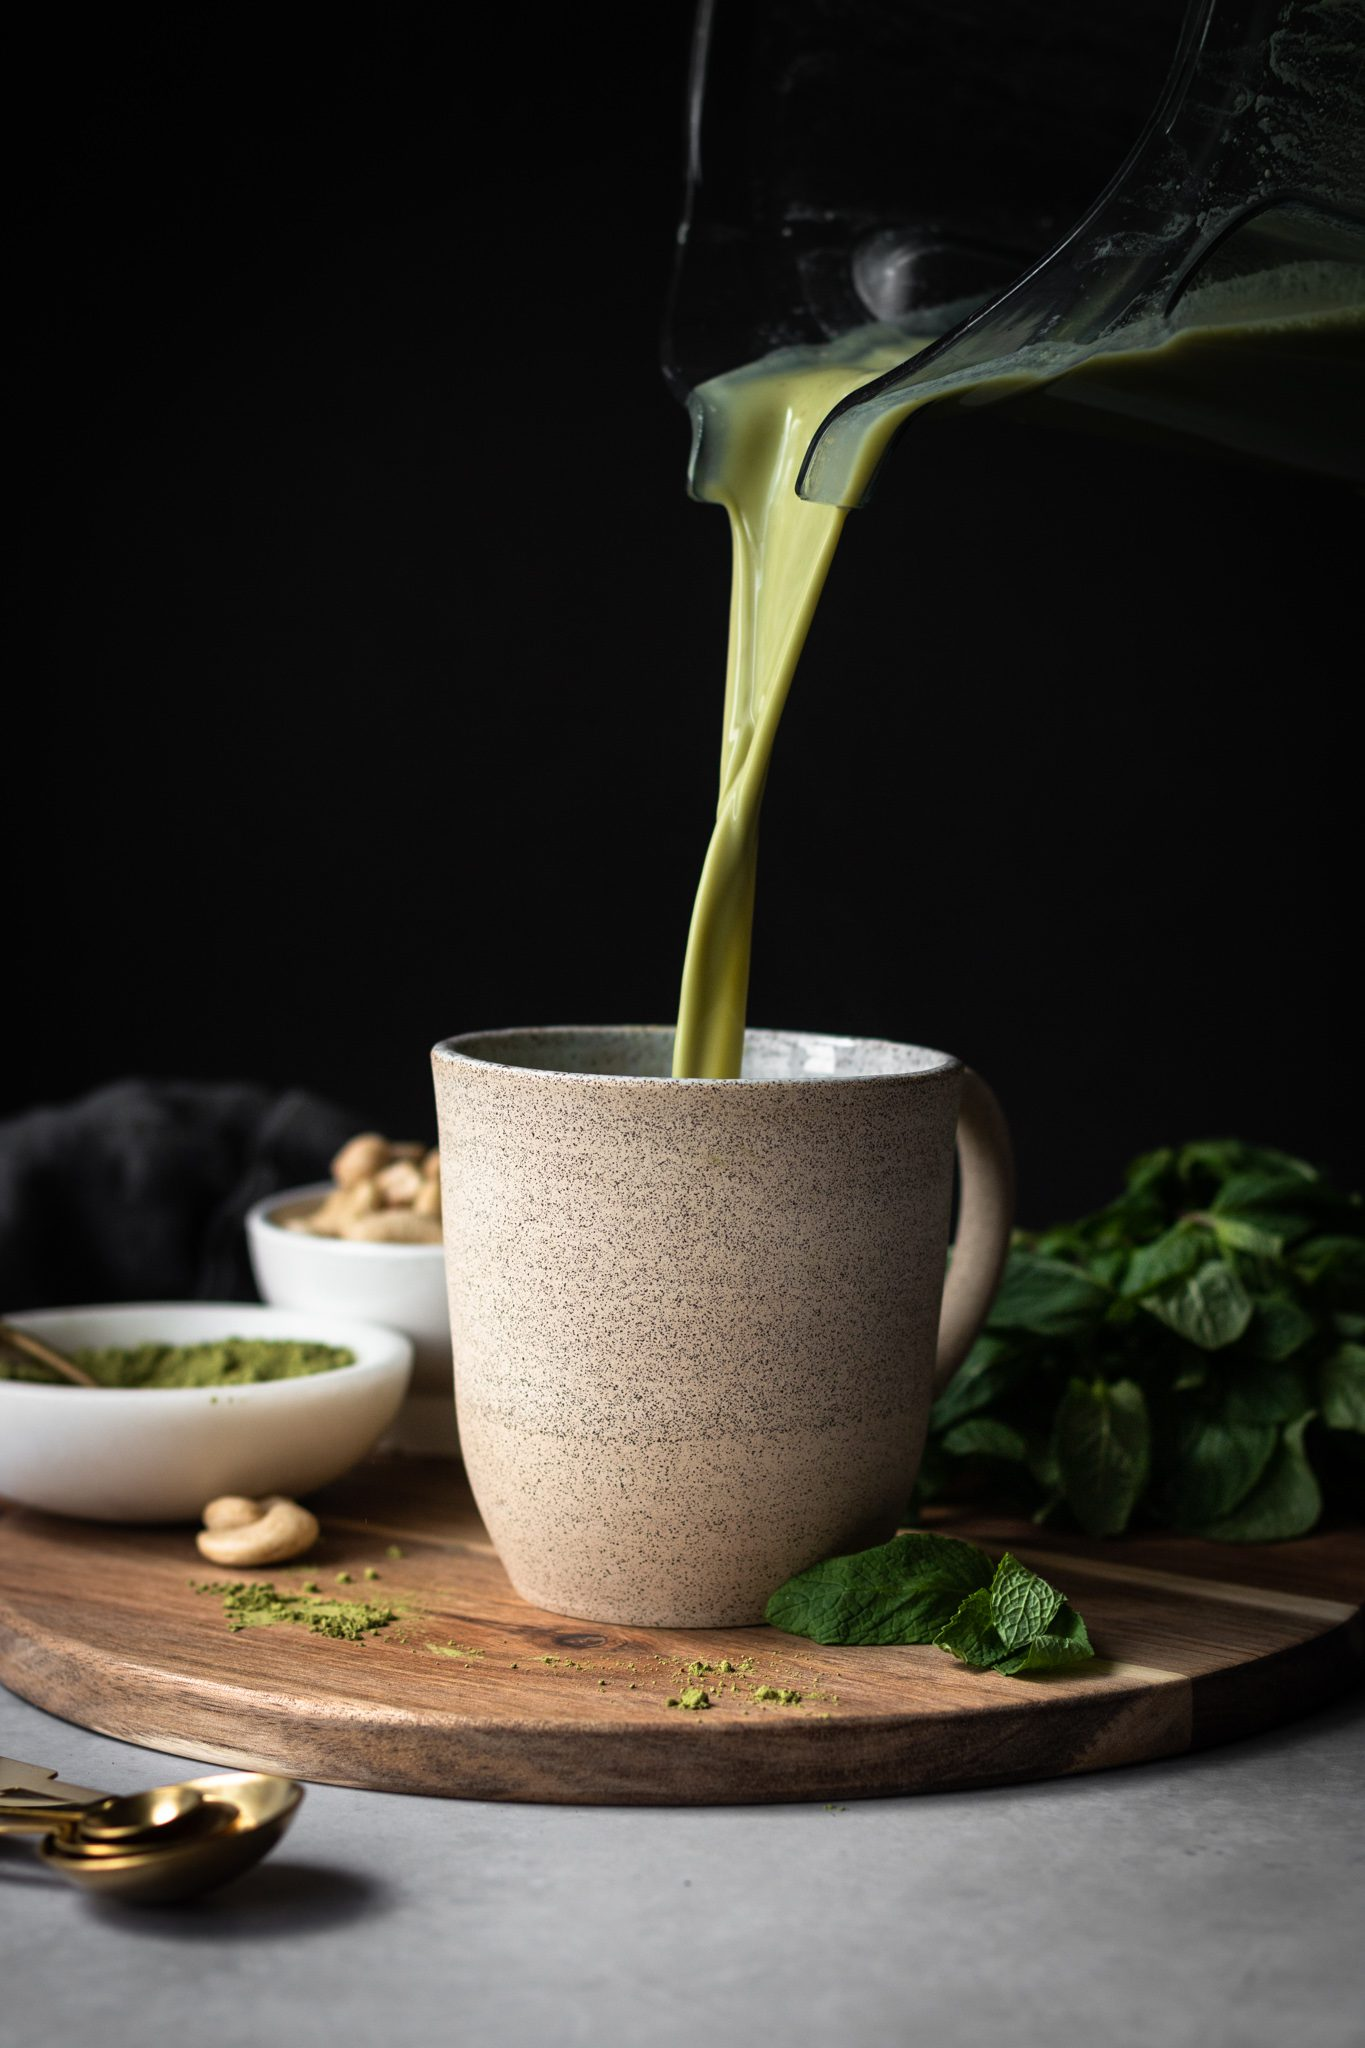 Mint matcha latte poured in a cup